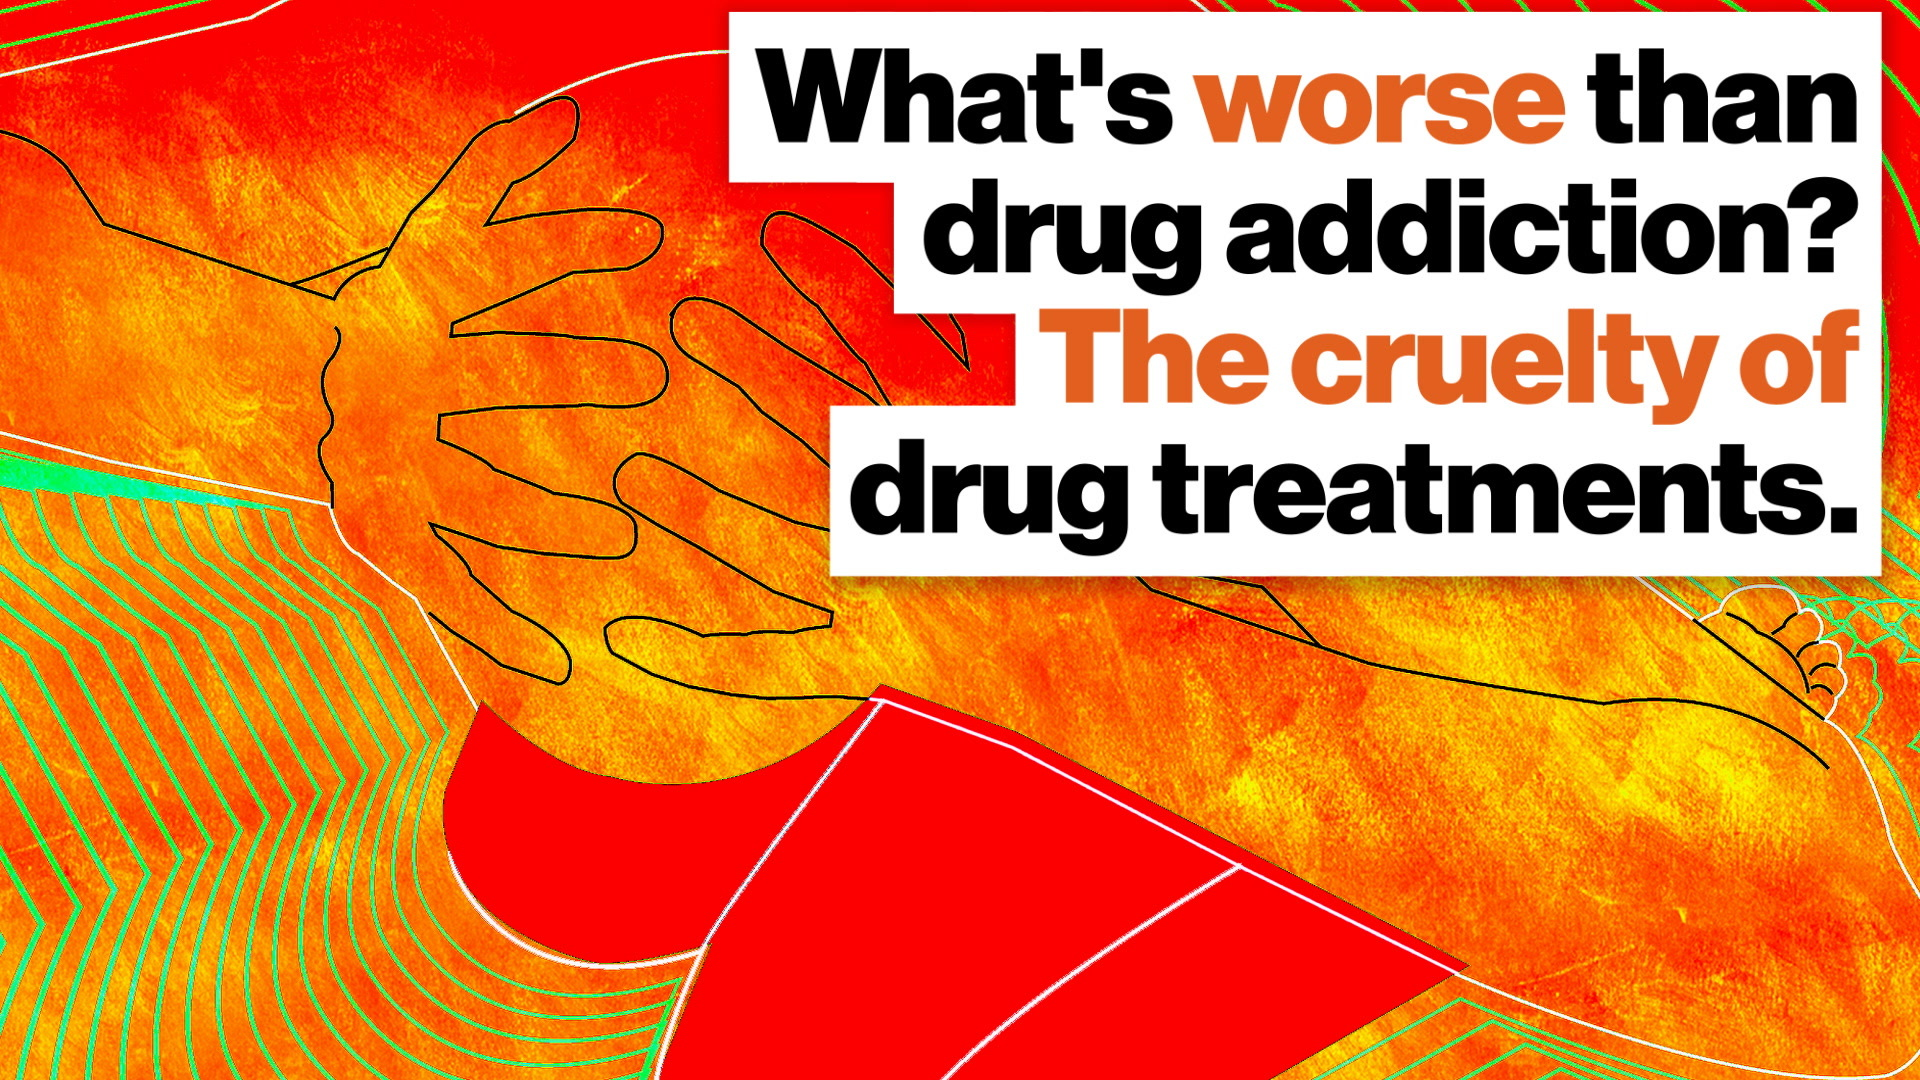 What s worse than drug addiction? The cruelty of drug treatments.